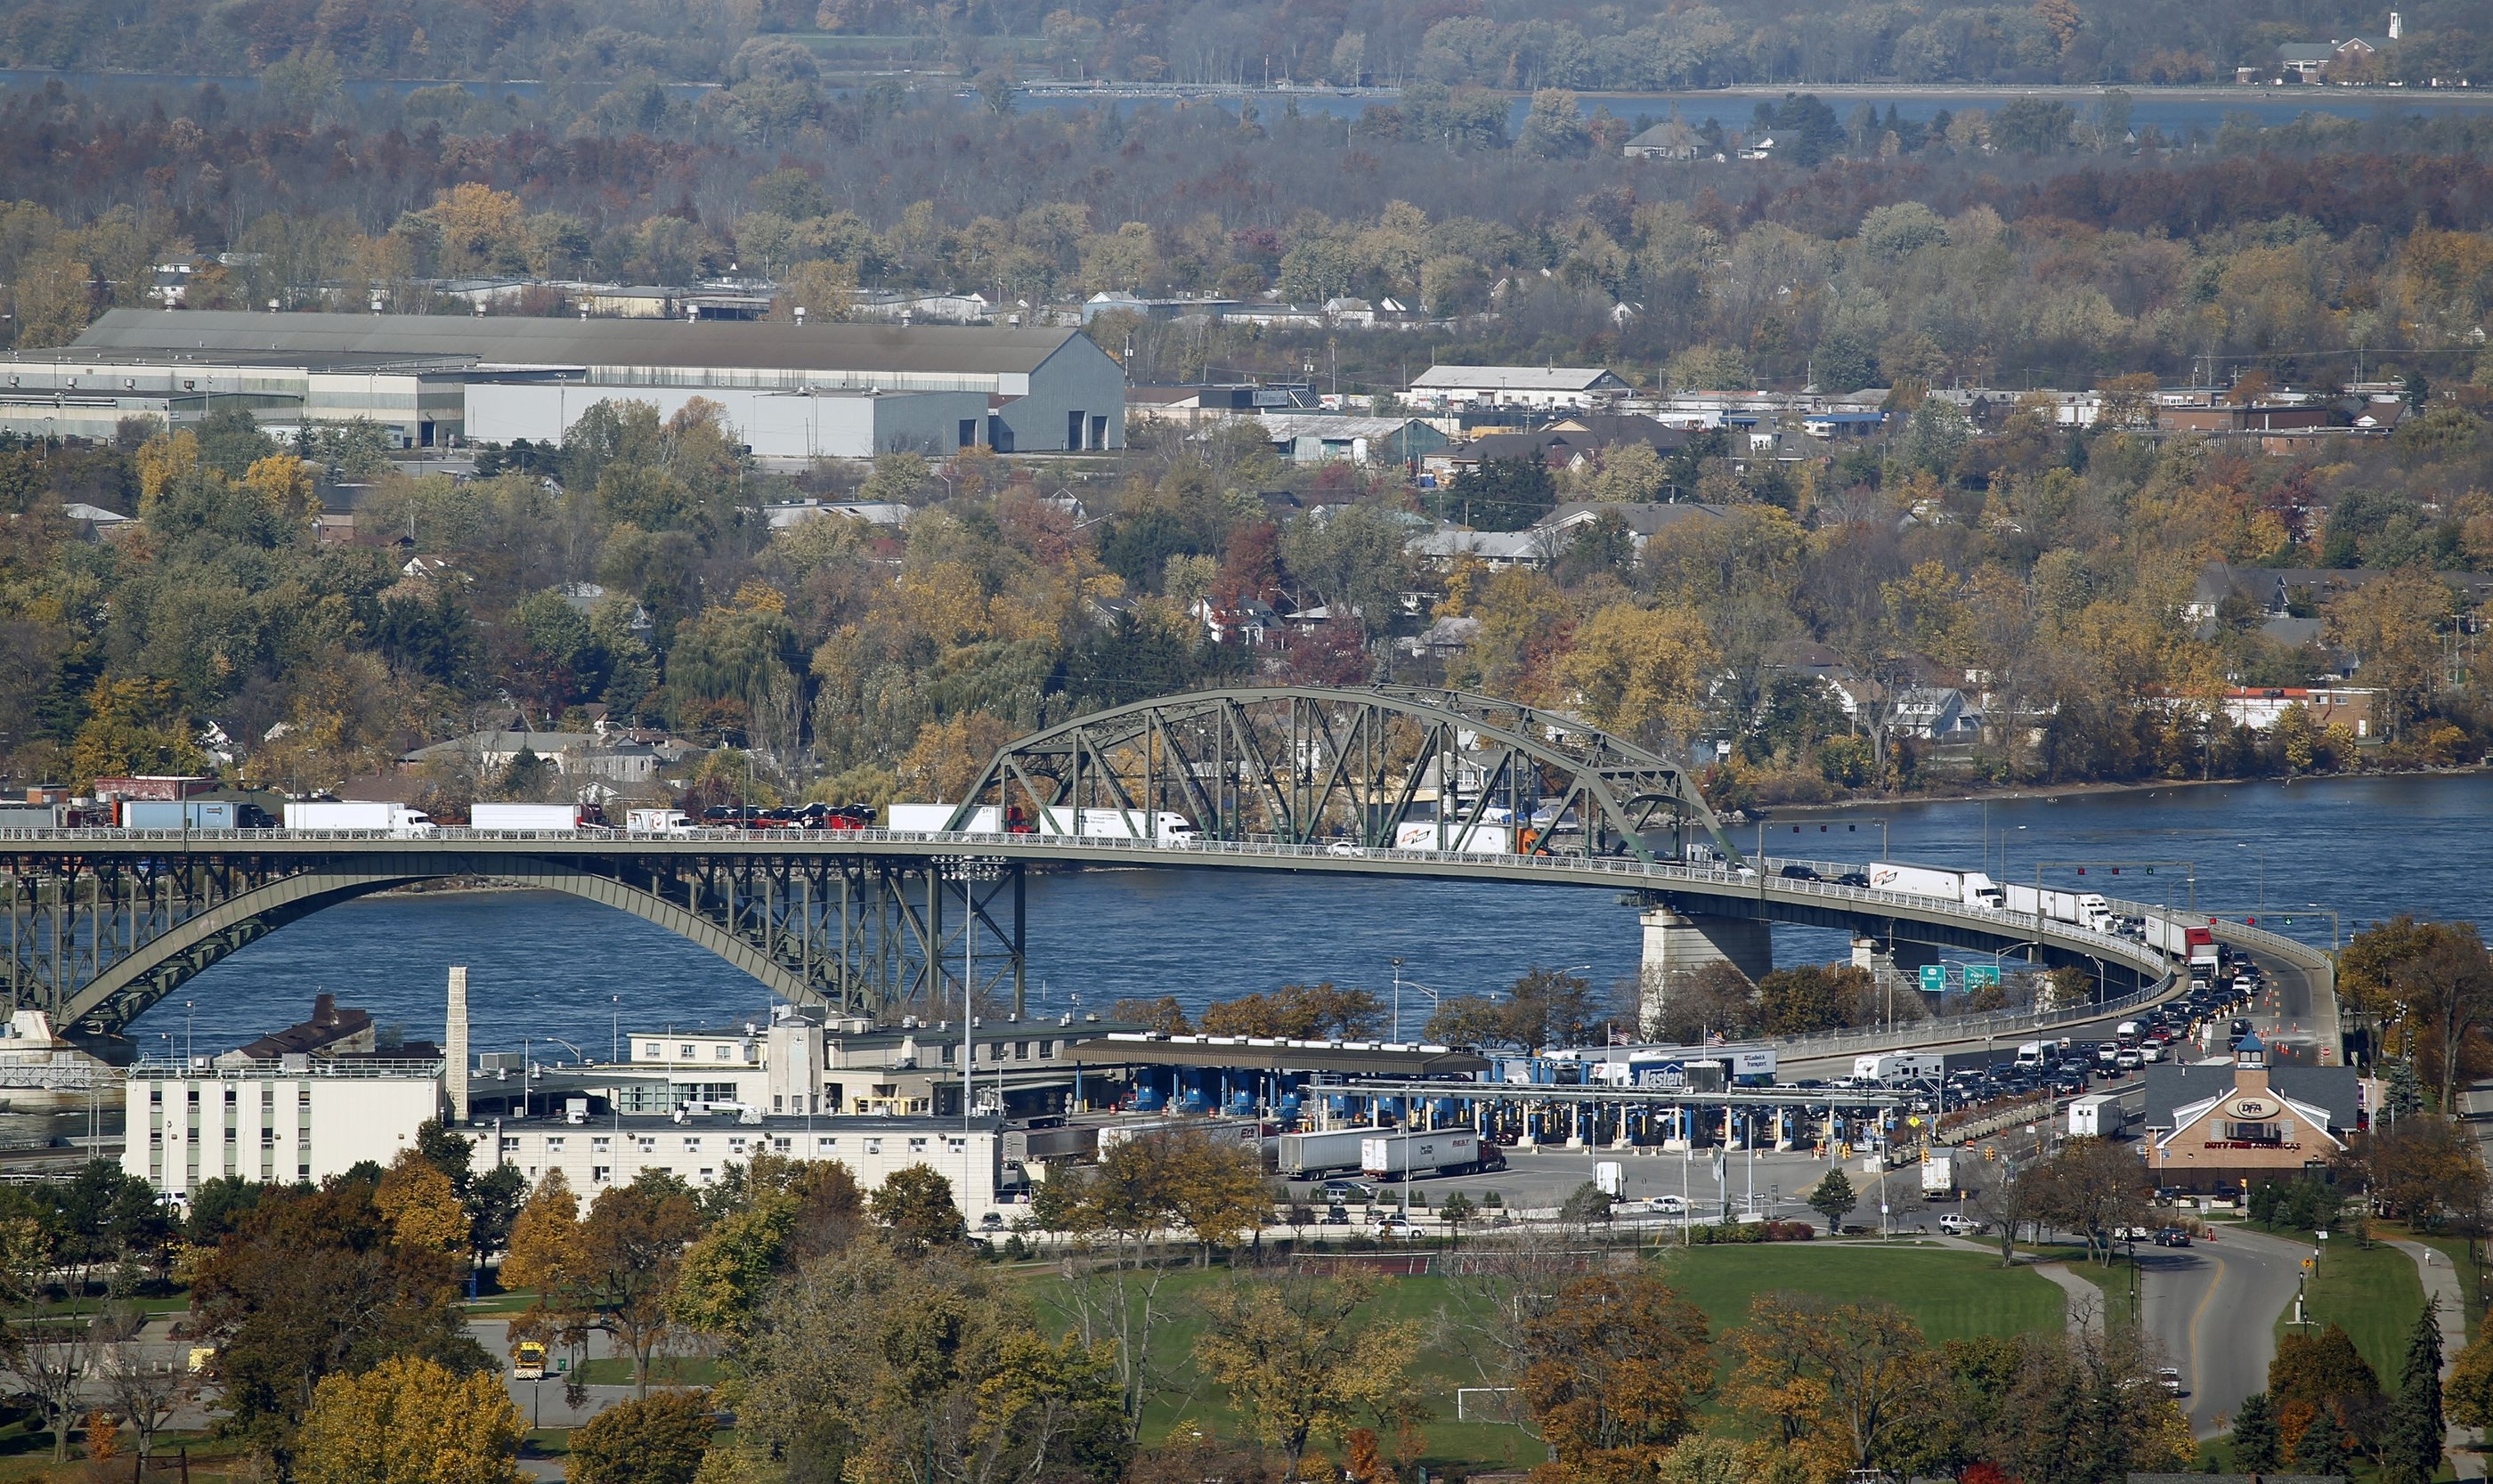 The Department of Environmental Conservation will test the air quality around the Peace Bridge again after plaza renovations are complete. {File photo by Harry Scull Jr. / Buffalo News}